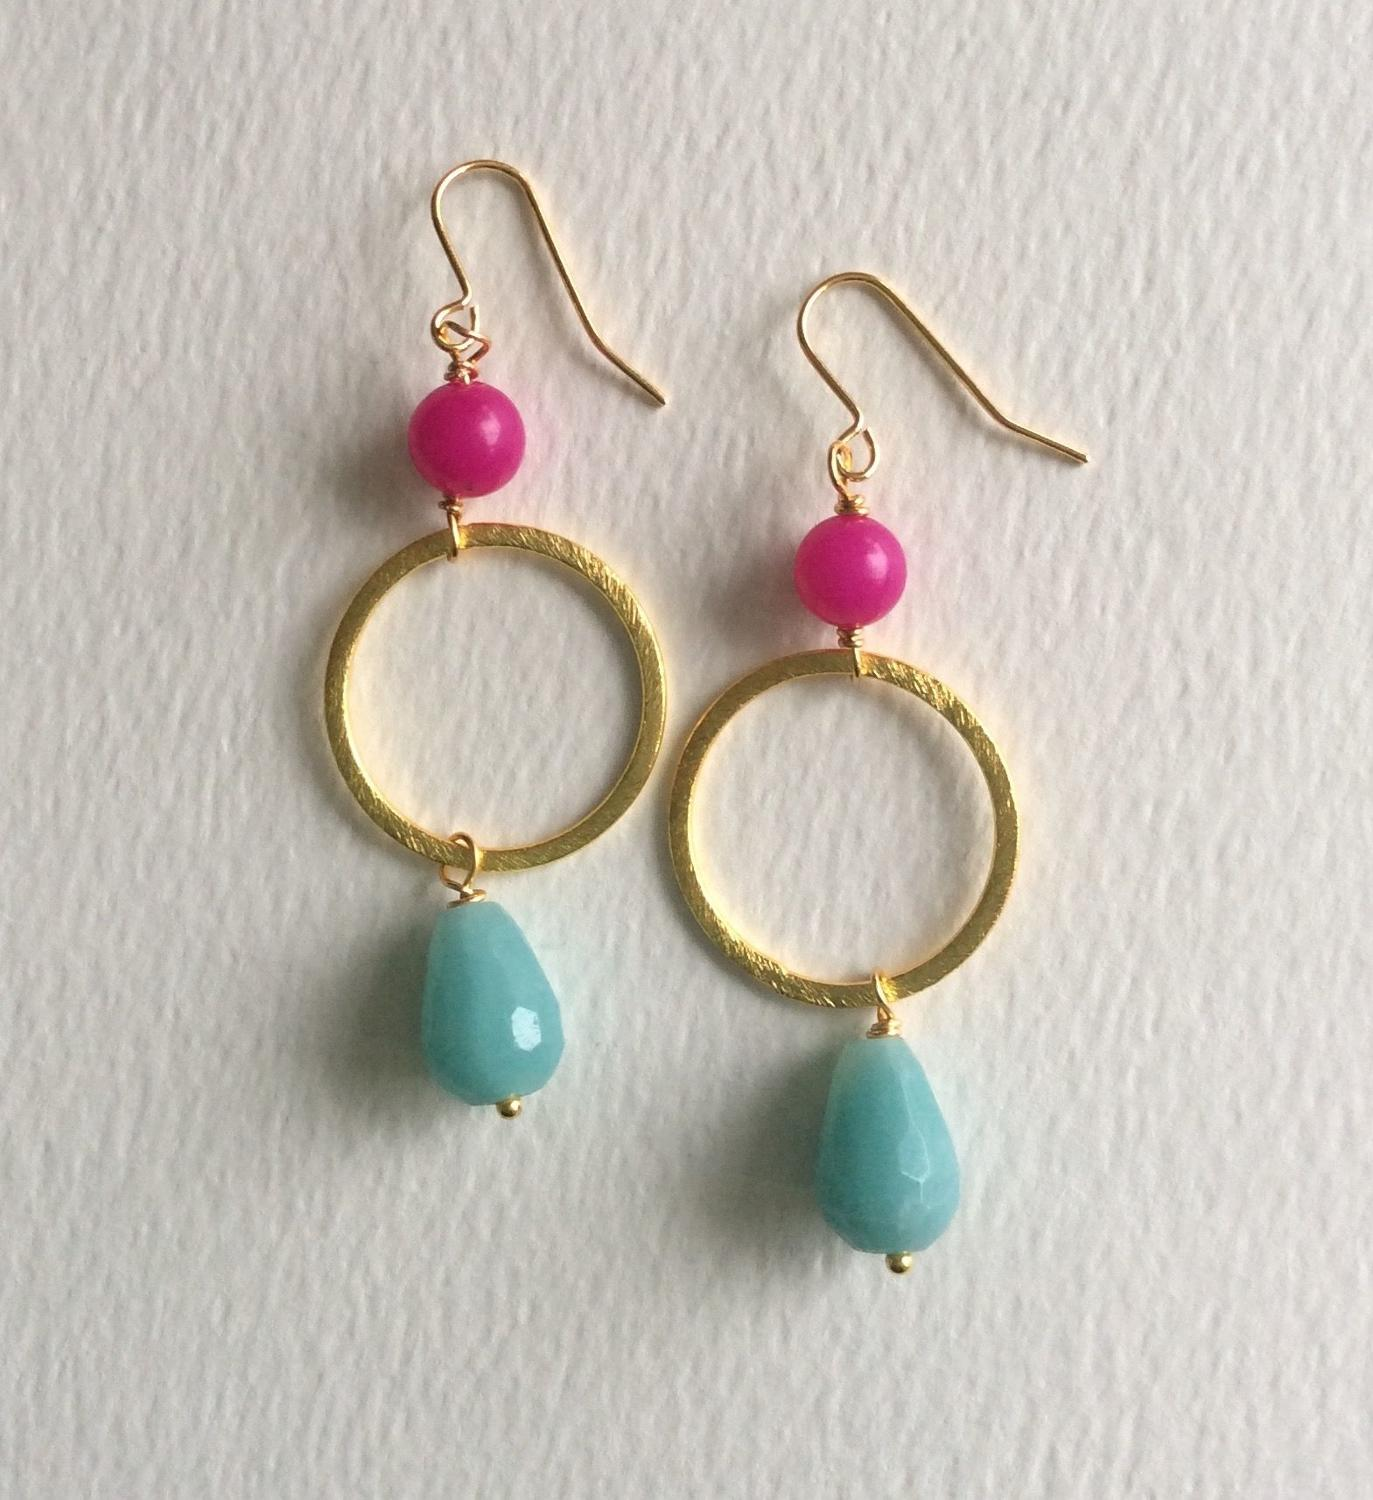 Lottie earrings in fuchsia and duckegg